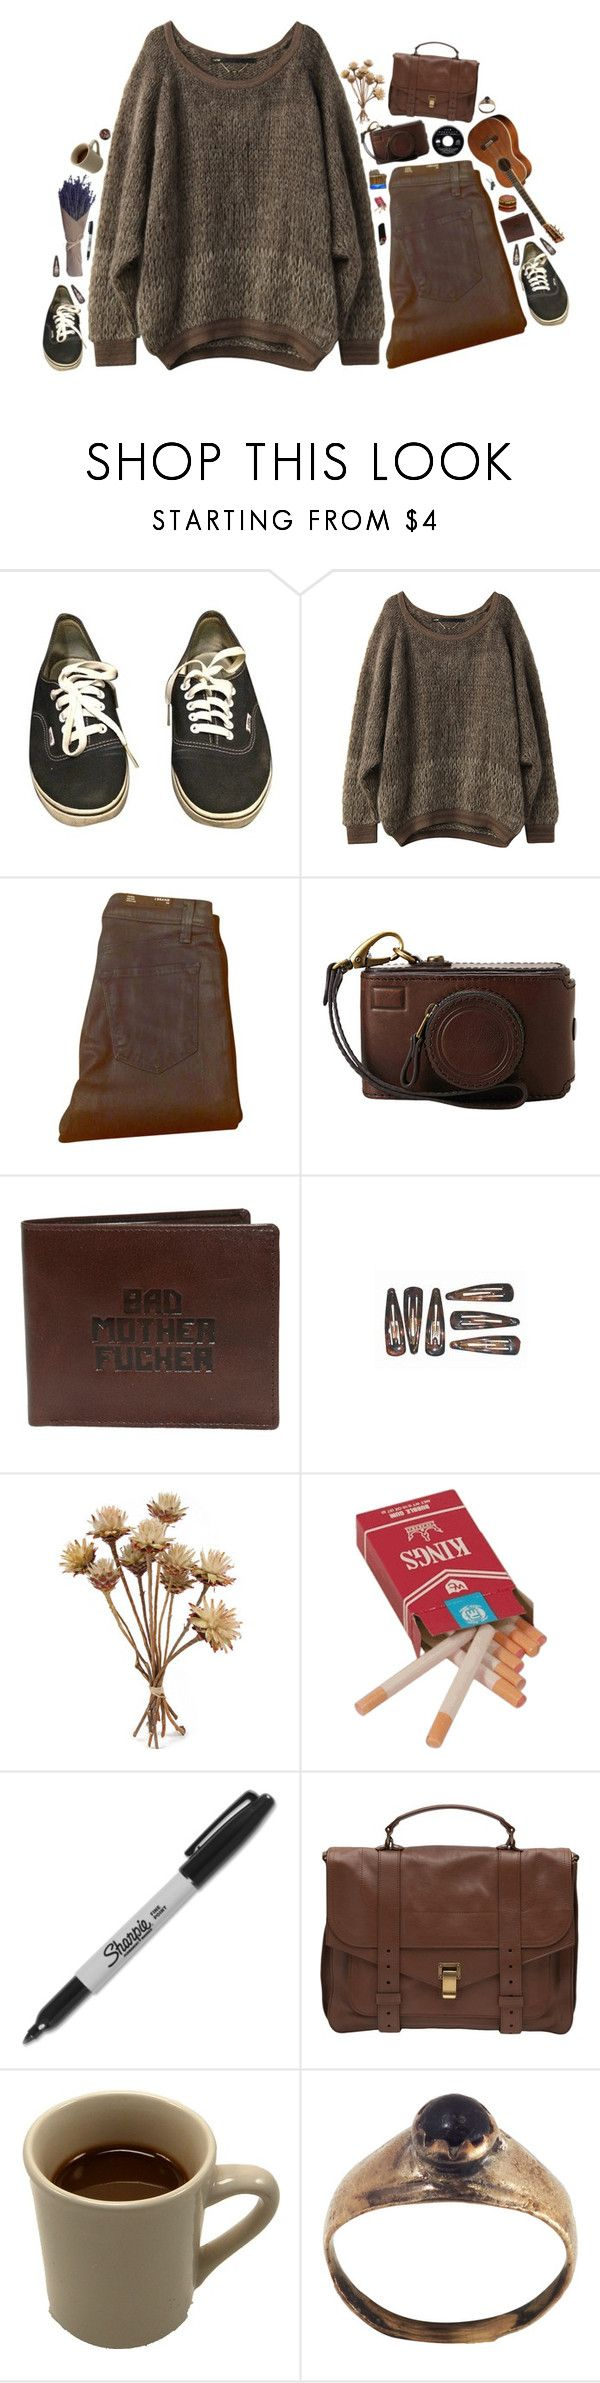 """""""buried"""" by xambergurlx ❤ liked on Polyvore featuring Vans, J Brand, Sharpie, Proenza Schouler, vintage, Hipster, indie, grunge and 90s"""